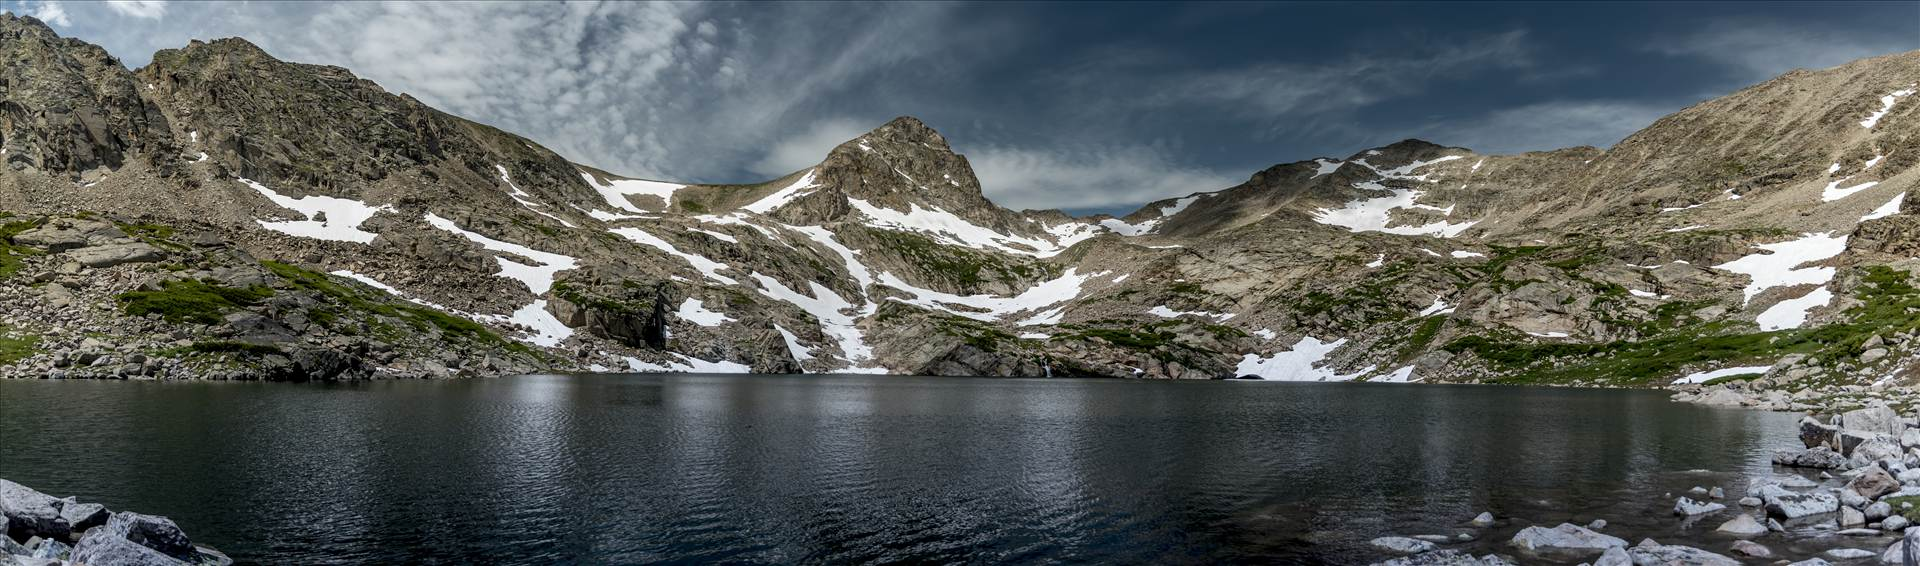 Blue Lake Colorado.jpg - Pano of Blue Lake by Dennis Rose